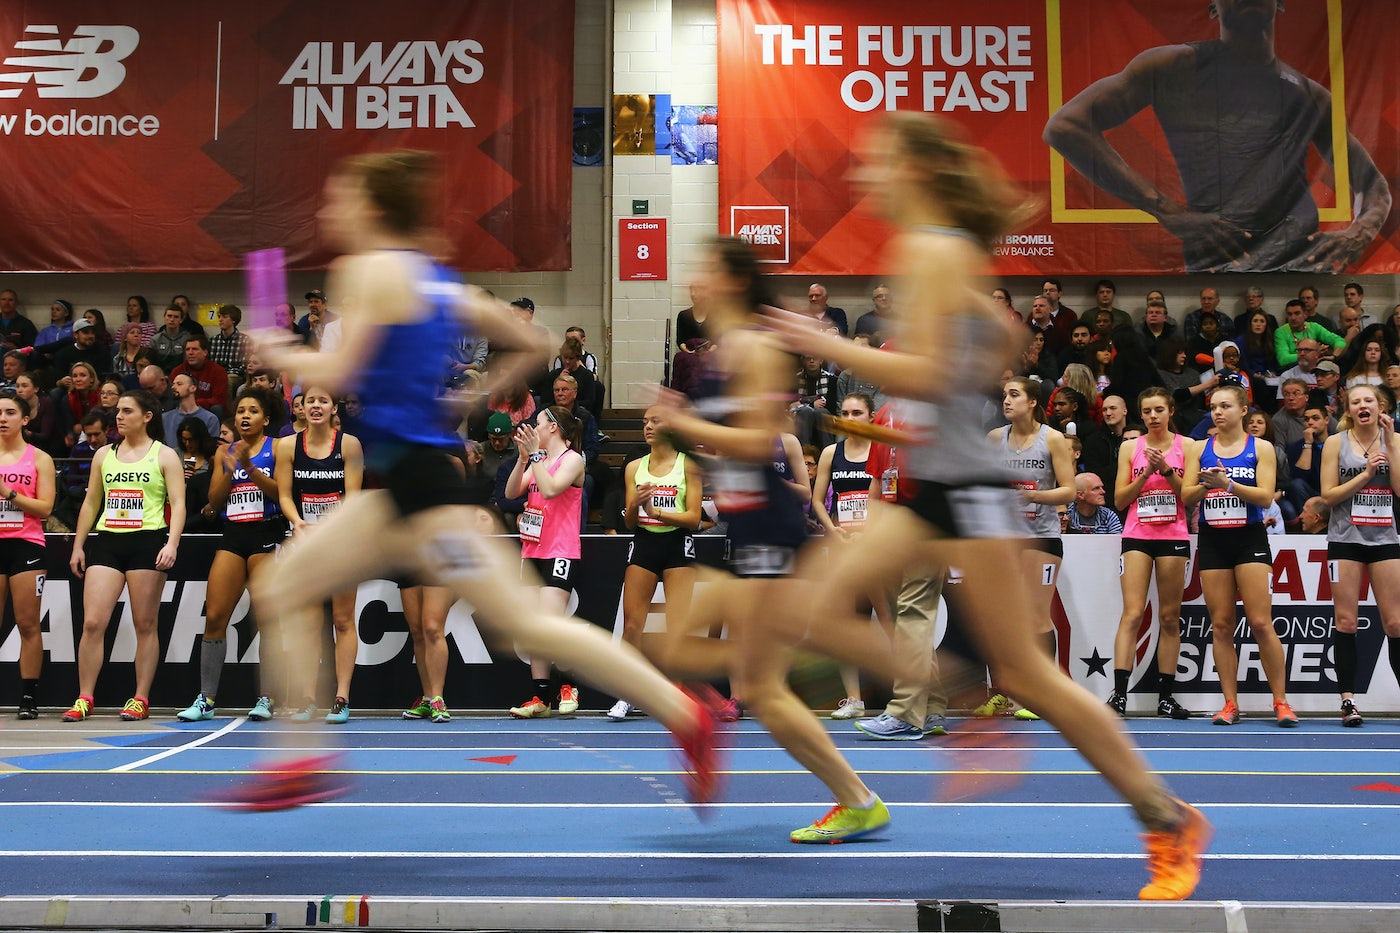 Three young women runners run by, blurred, on an indoor track, as other young runners and spectators look on.